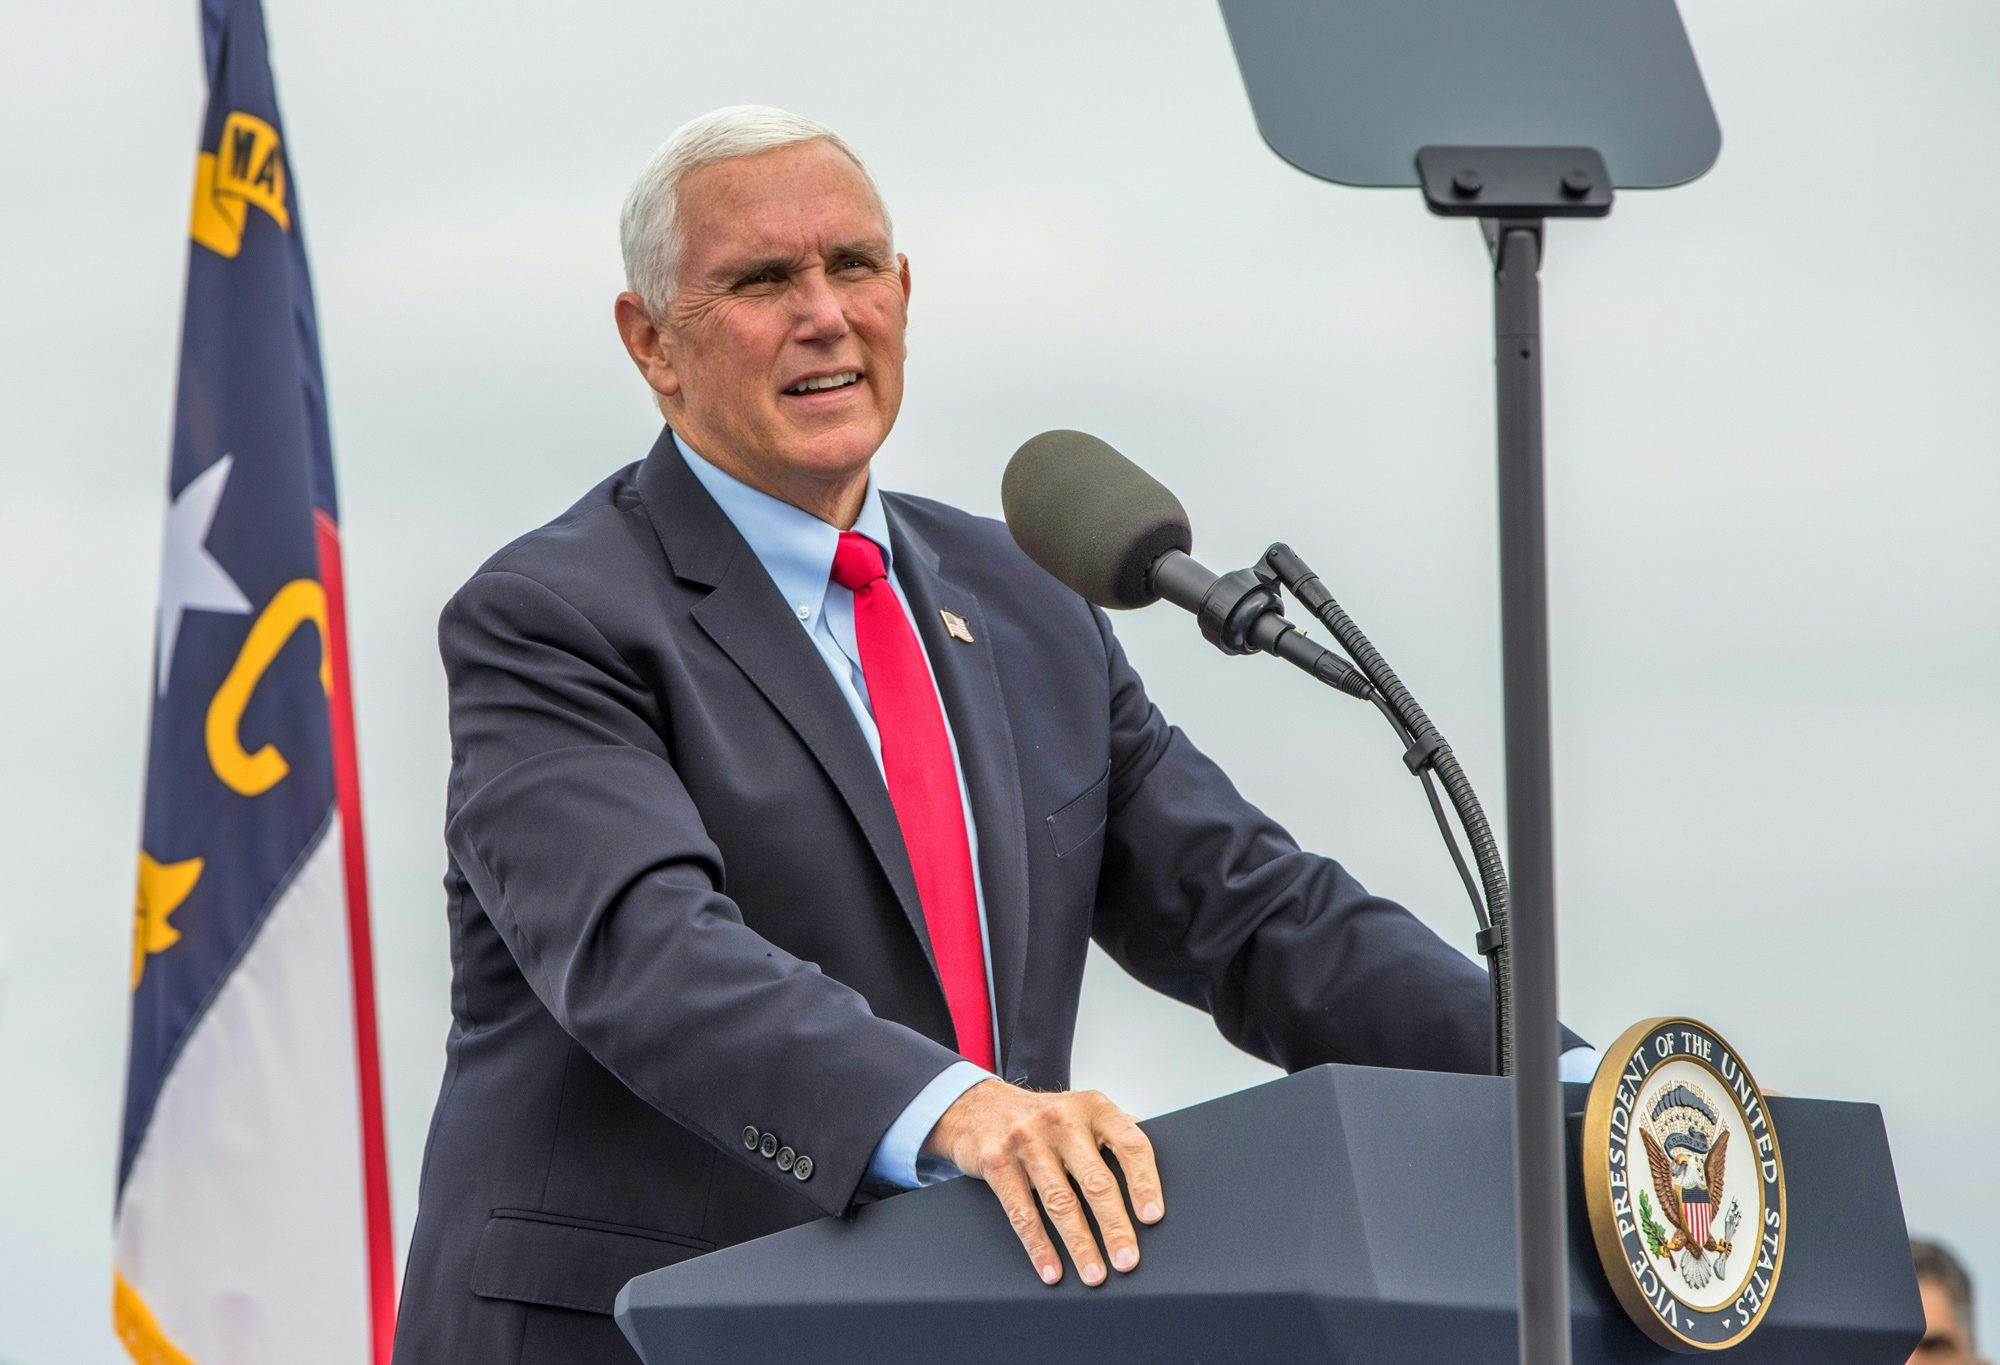 Vice President Mike Pence speaks at a Make America Great Again rally at Greensboro International Airport in Greensboro, North Carolina, on October 27.